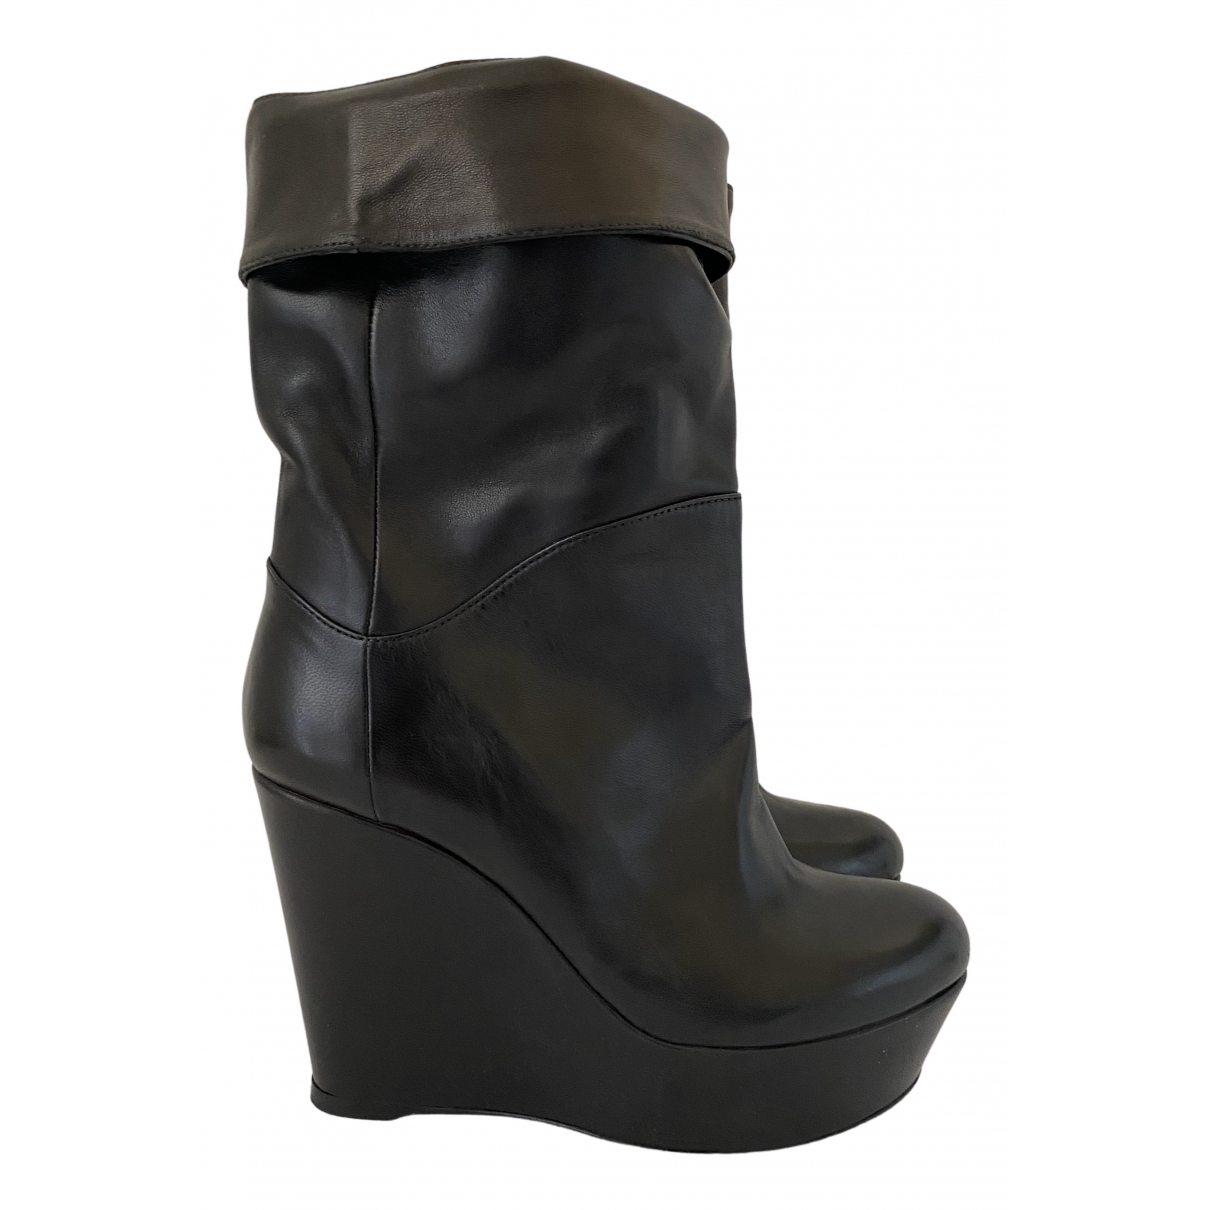 Gianmarco Lorenzi \N Black Leather Ankle boots for Women 37 IT